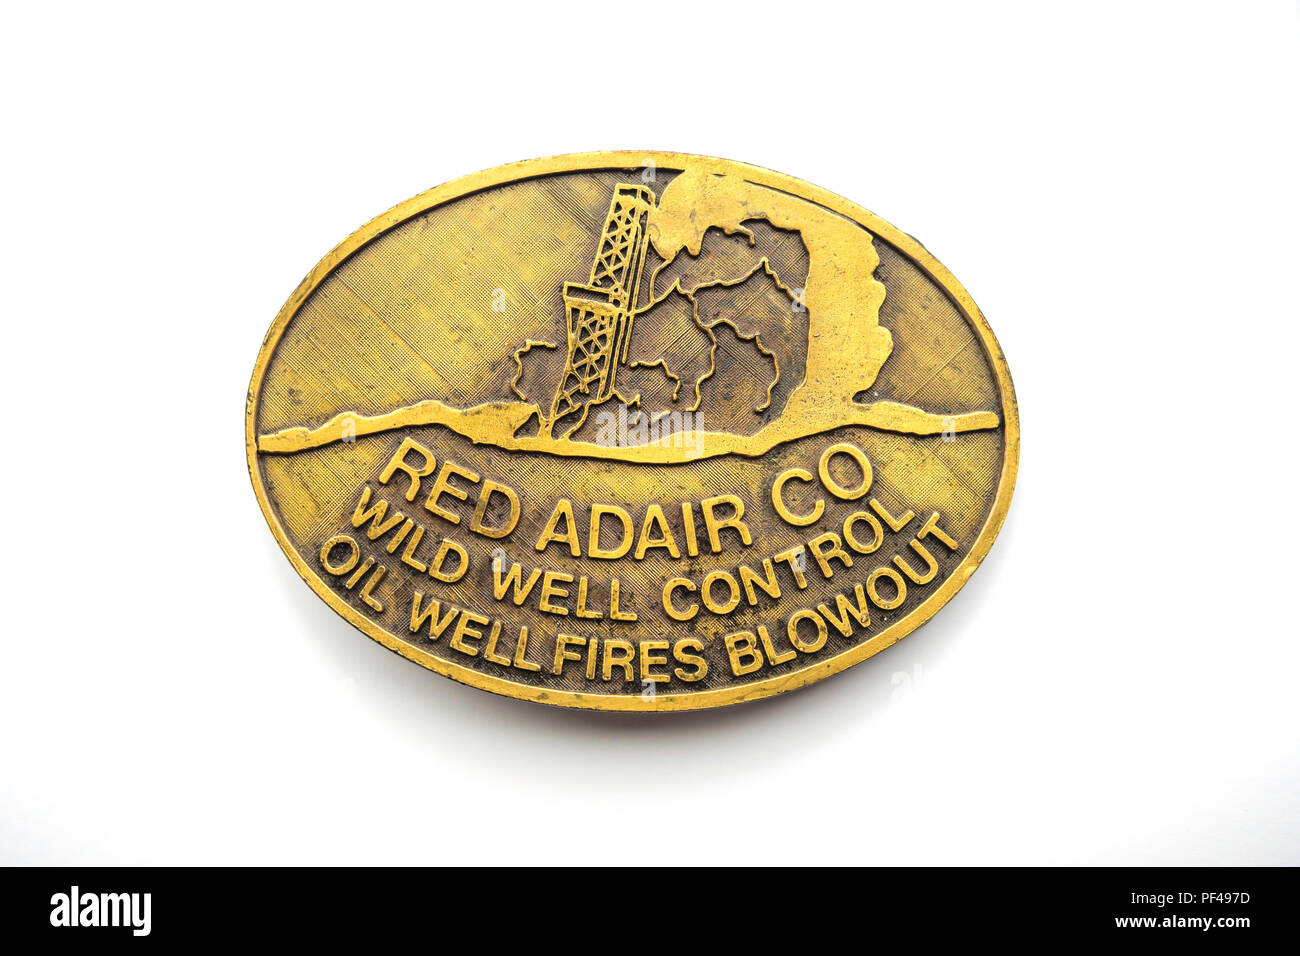 AA brass belt buckle publicity material from the Red Adair Company Wild Well Control Oil Well fires and Blowout Stock Photo